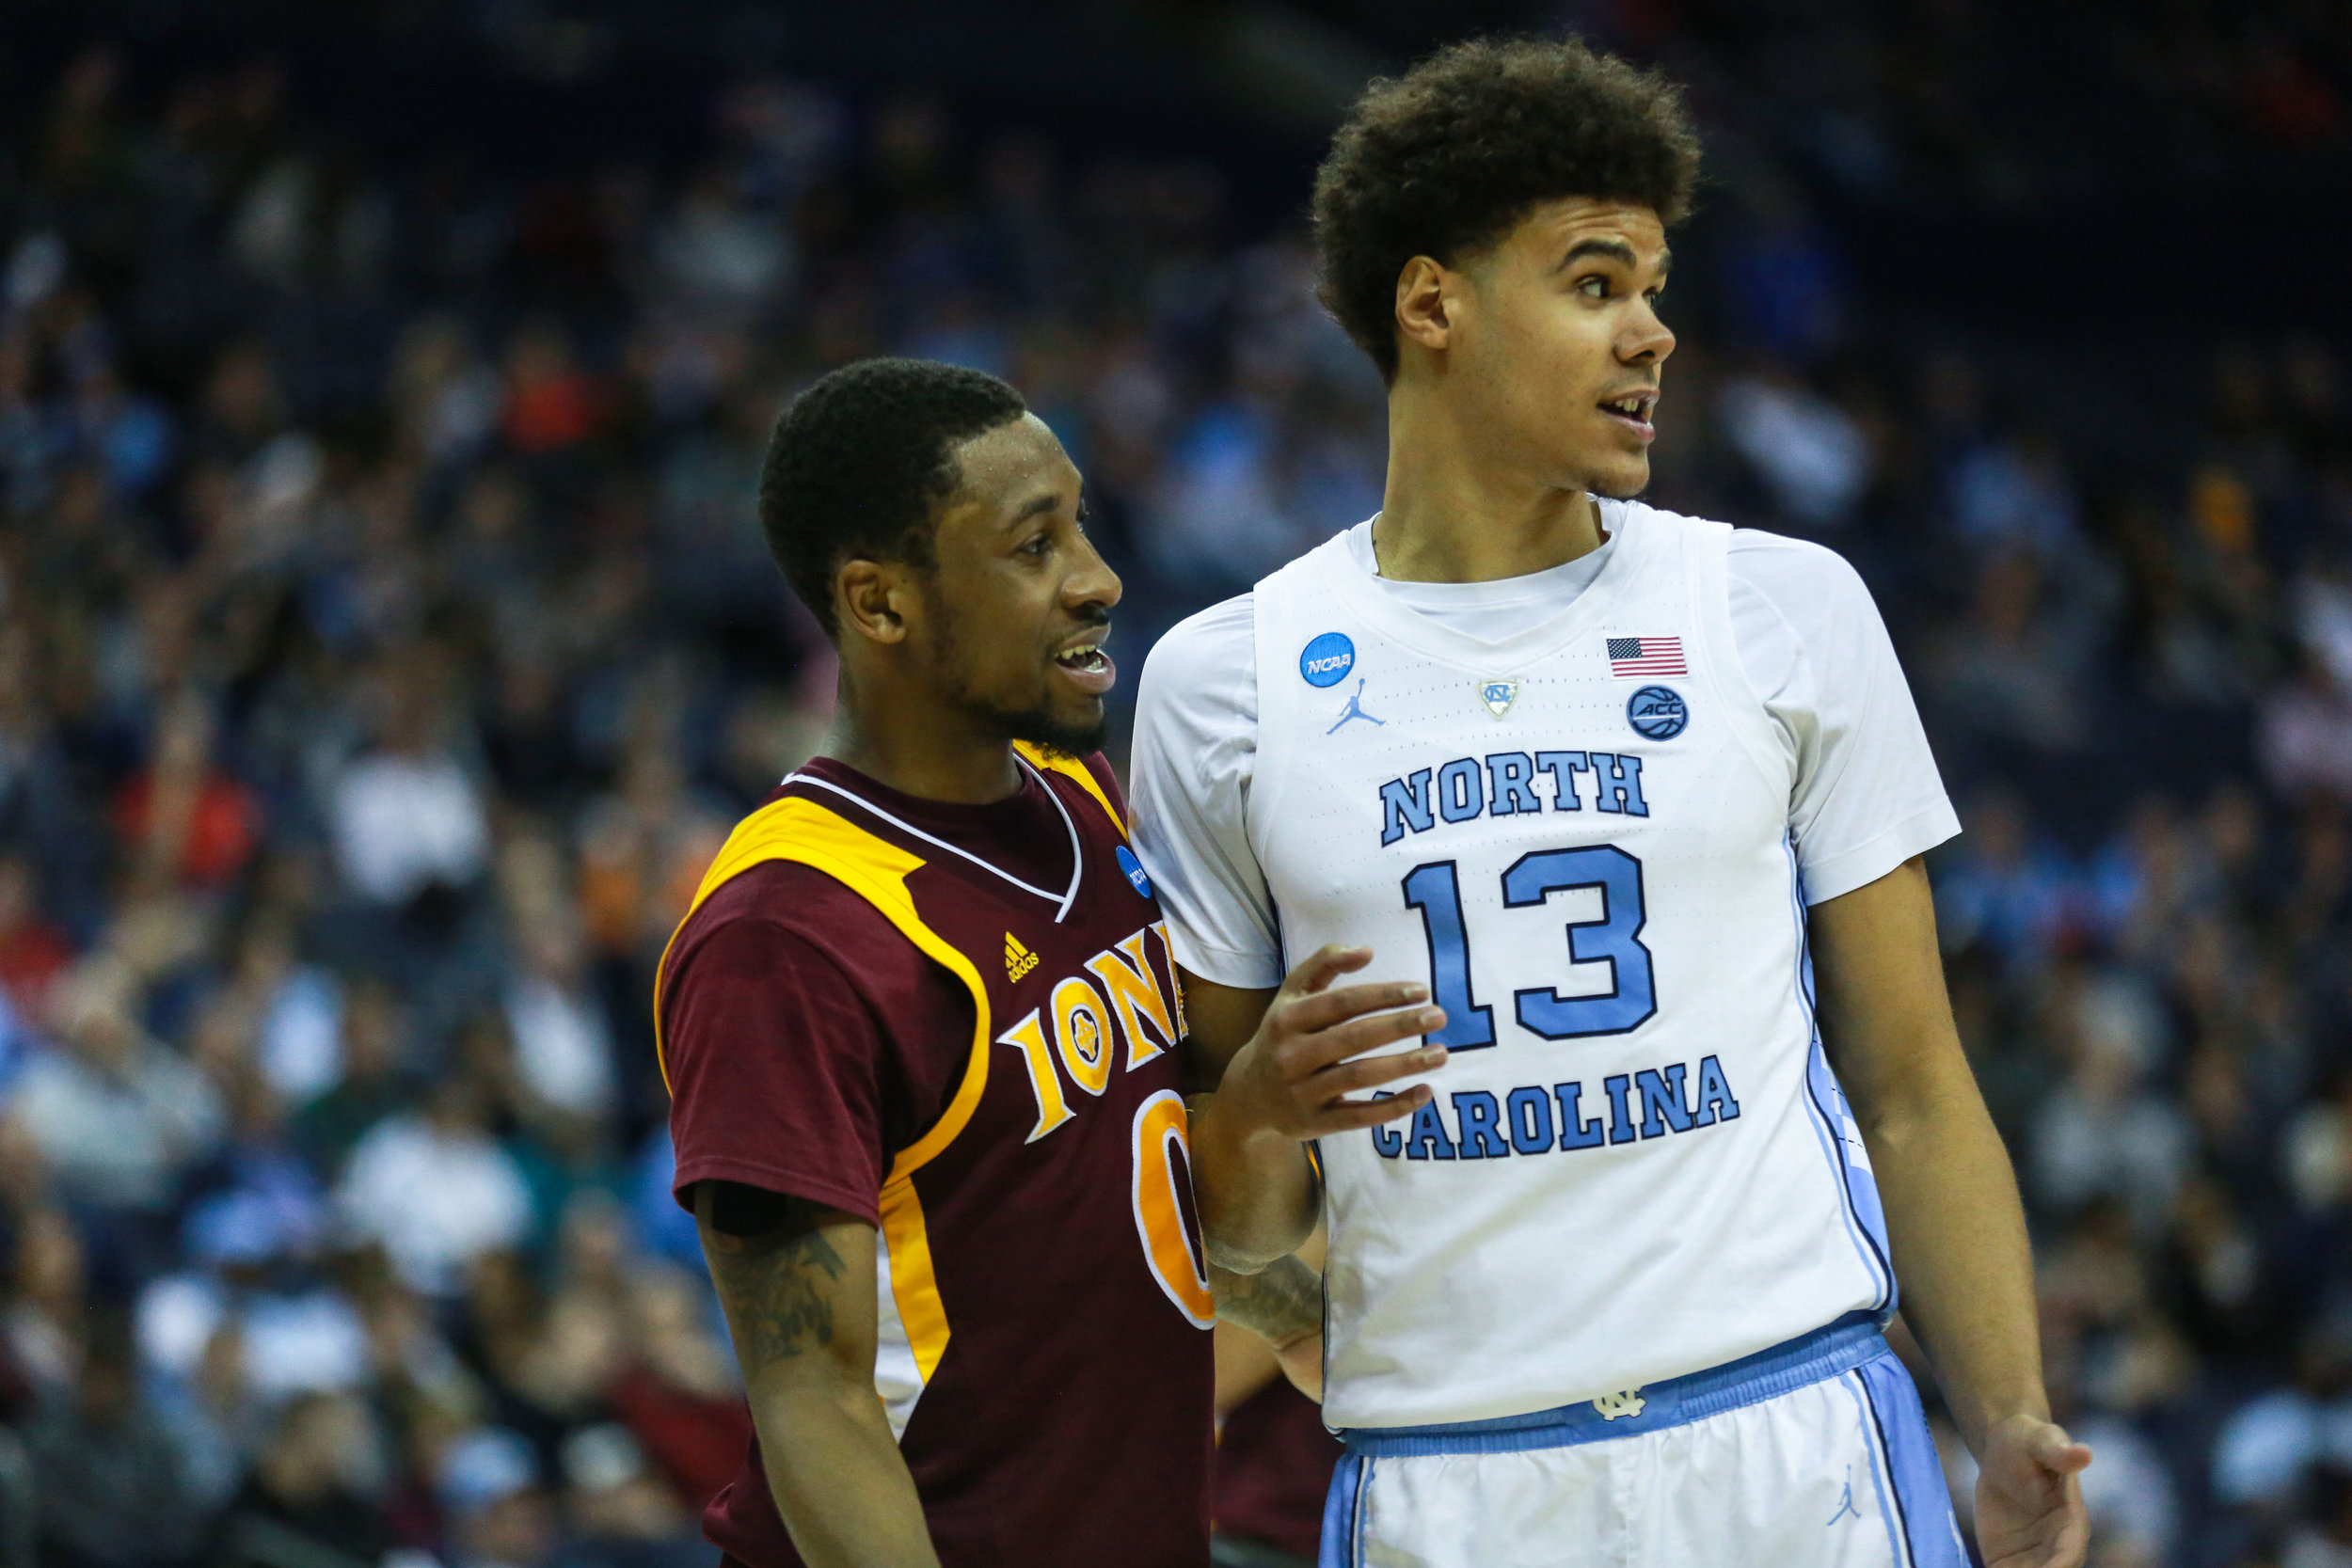 Cameron Johnson is guarded by guard Rickey McGill during UNC's win over Iona. The graduate transfer led UNC in scoring with 21 points, including a 4-of-8 effort from three. The Tar Heels are 15-0 when Johnson scores three of more three pointers in a game this season. | Photo by Alex Kormann